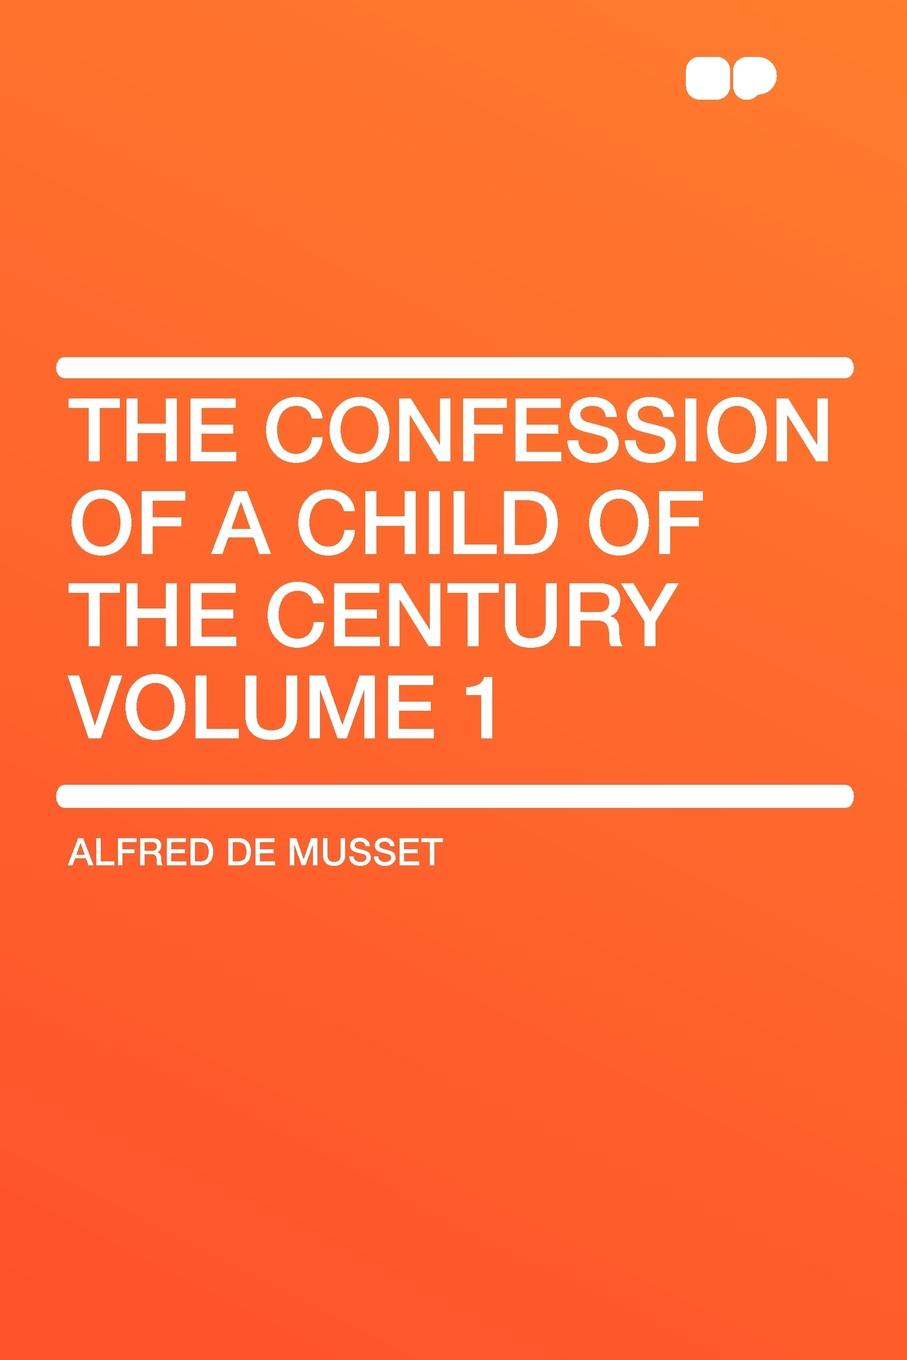 лучшая цена Alfred de Musset The Confession of a Child of the Century Volume 1